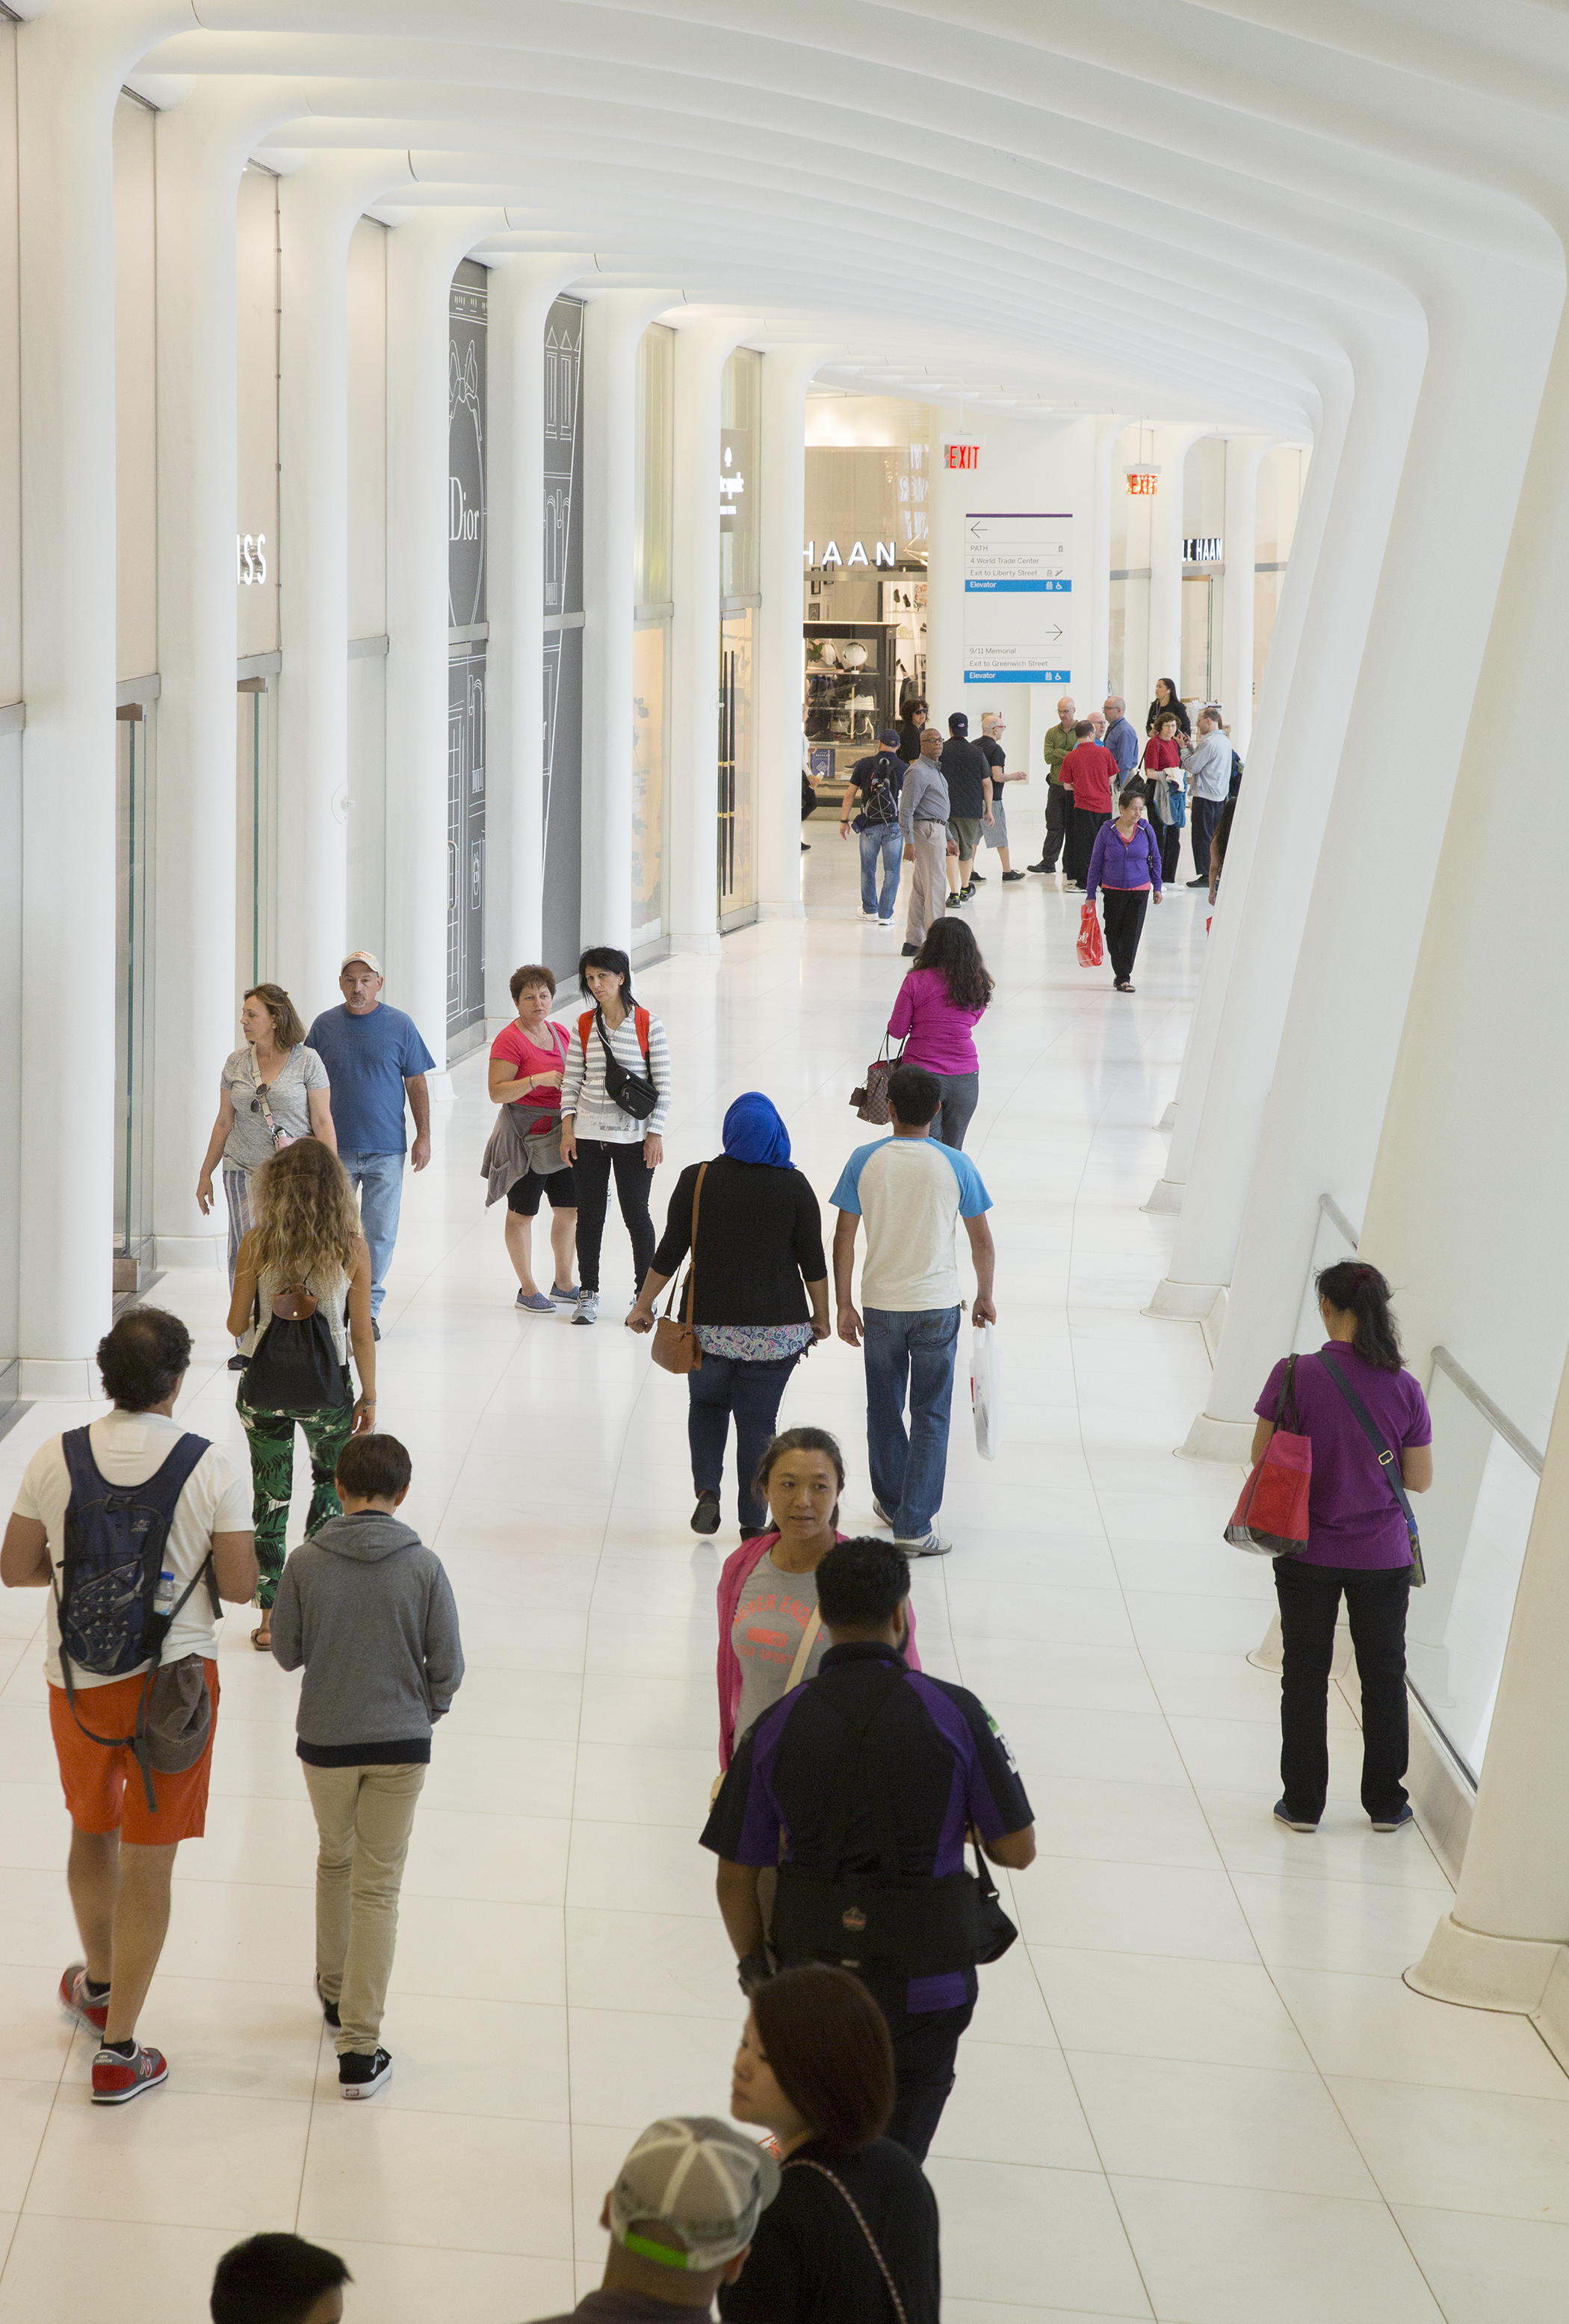 Shoppers walk through Westfield World Trade Center, which houses stores ranging from Banana Republic to Christian Dior, Kate Spade and John Varvatos.